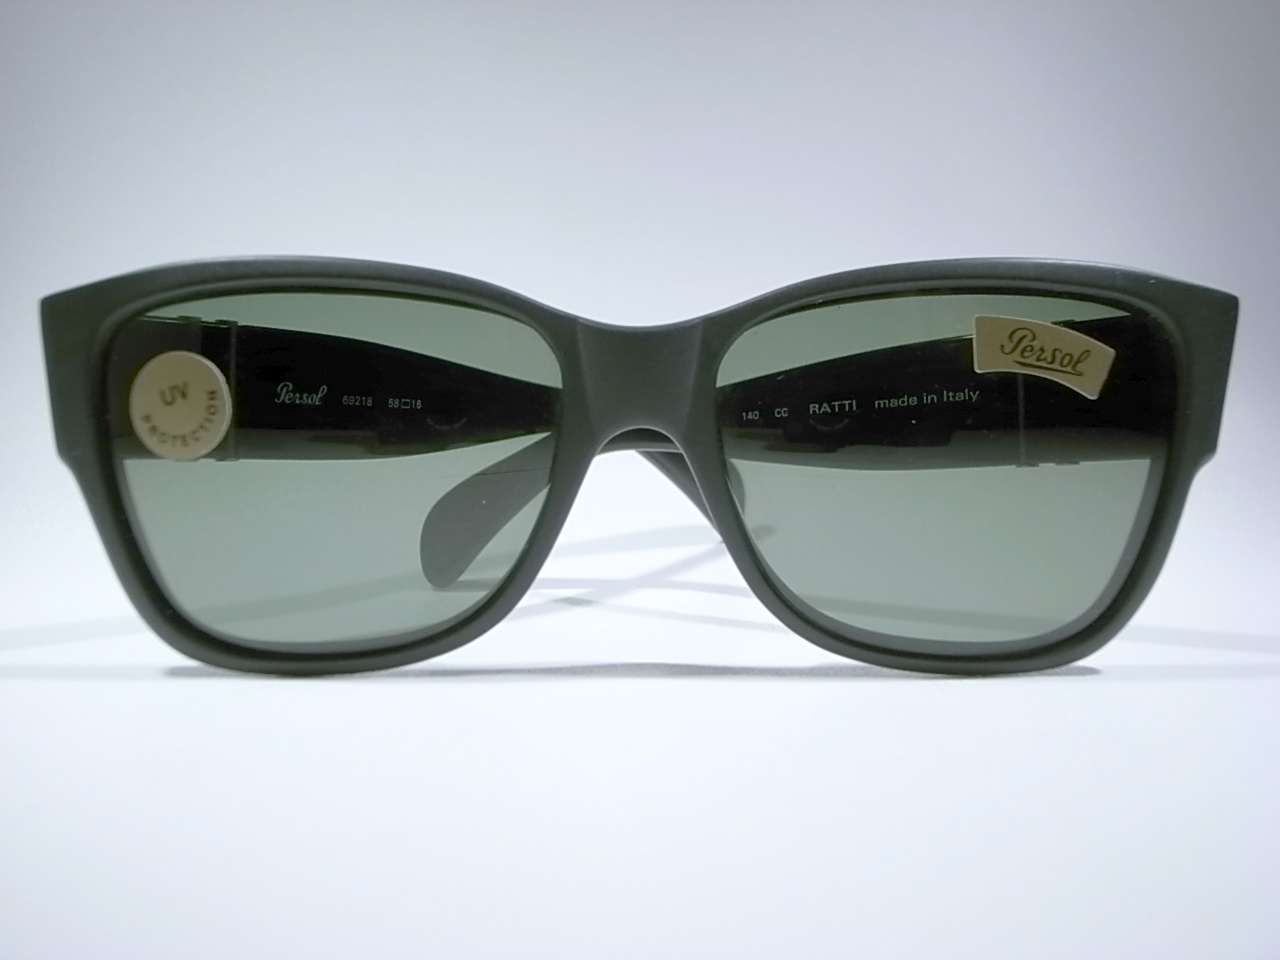 ac815d1075a04 M VINTAGE SUNGLASSES COLLECTION  PERSOL RATTI 69218 made in ITALY